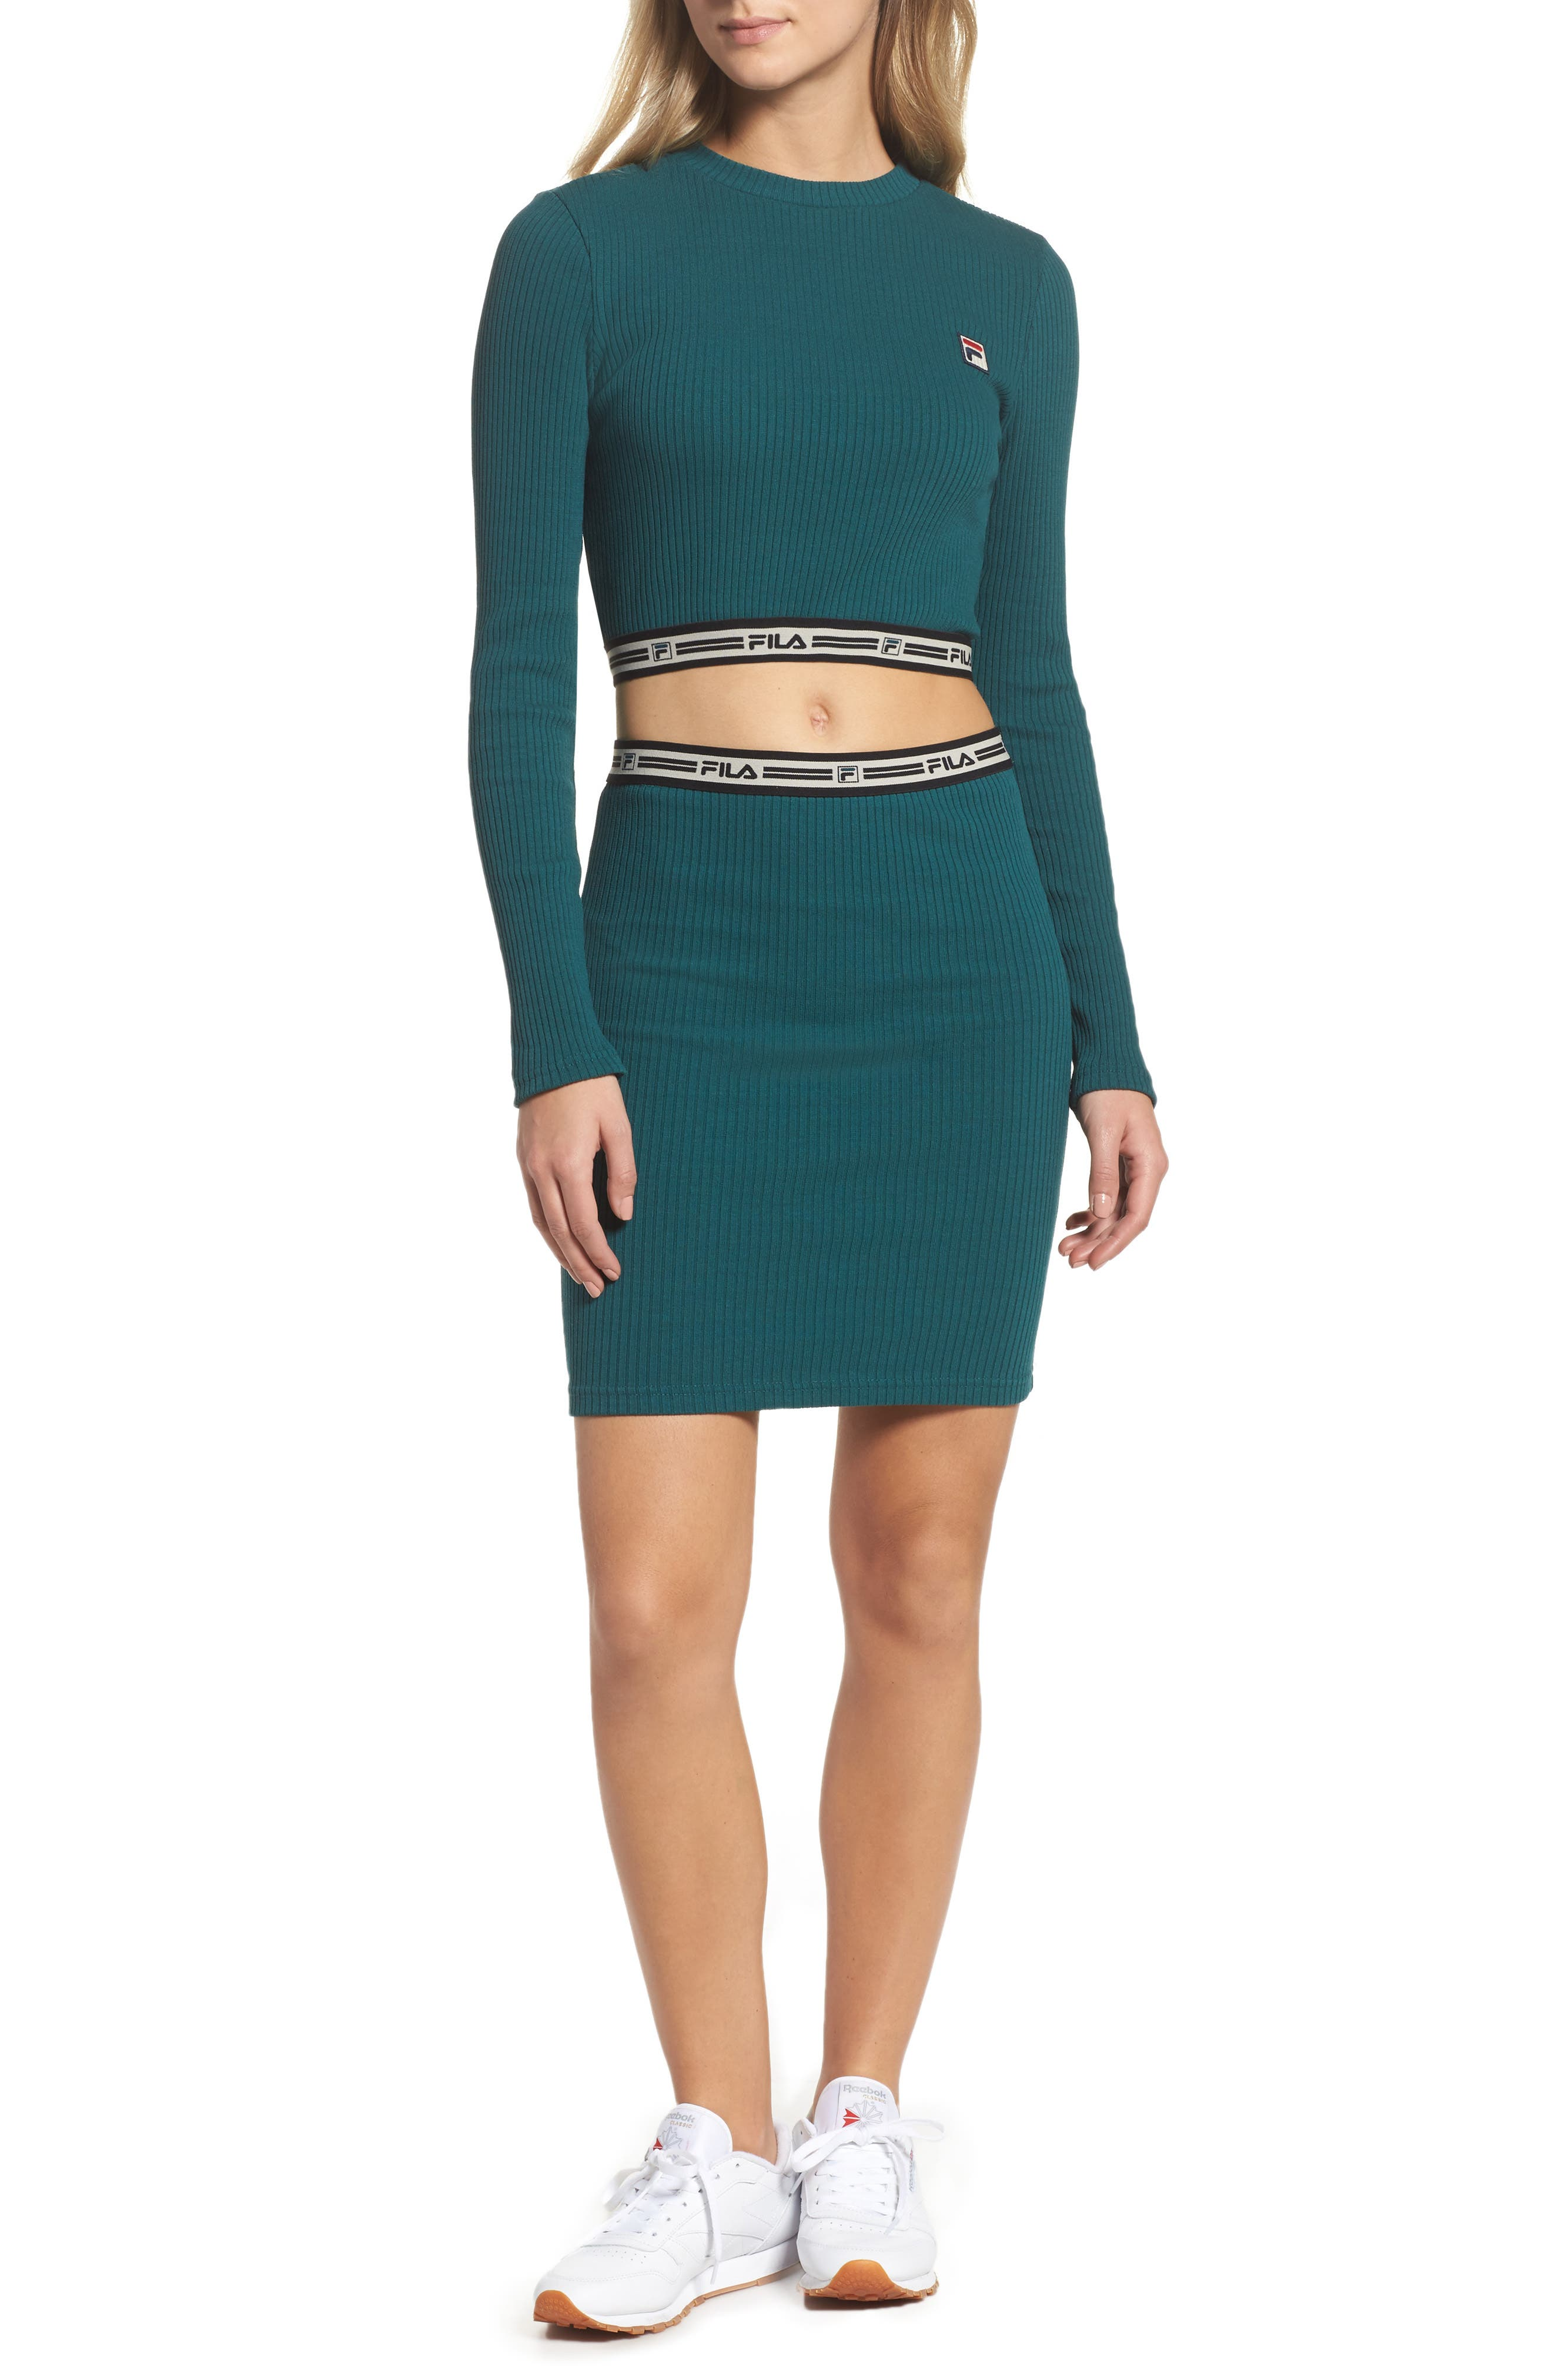 Colleen Long Sleeve Crop Top,                             Alternate thumbnail 8, color,                             440